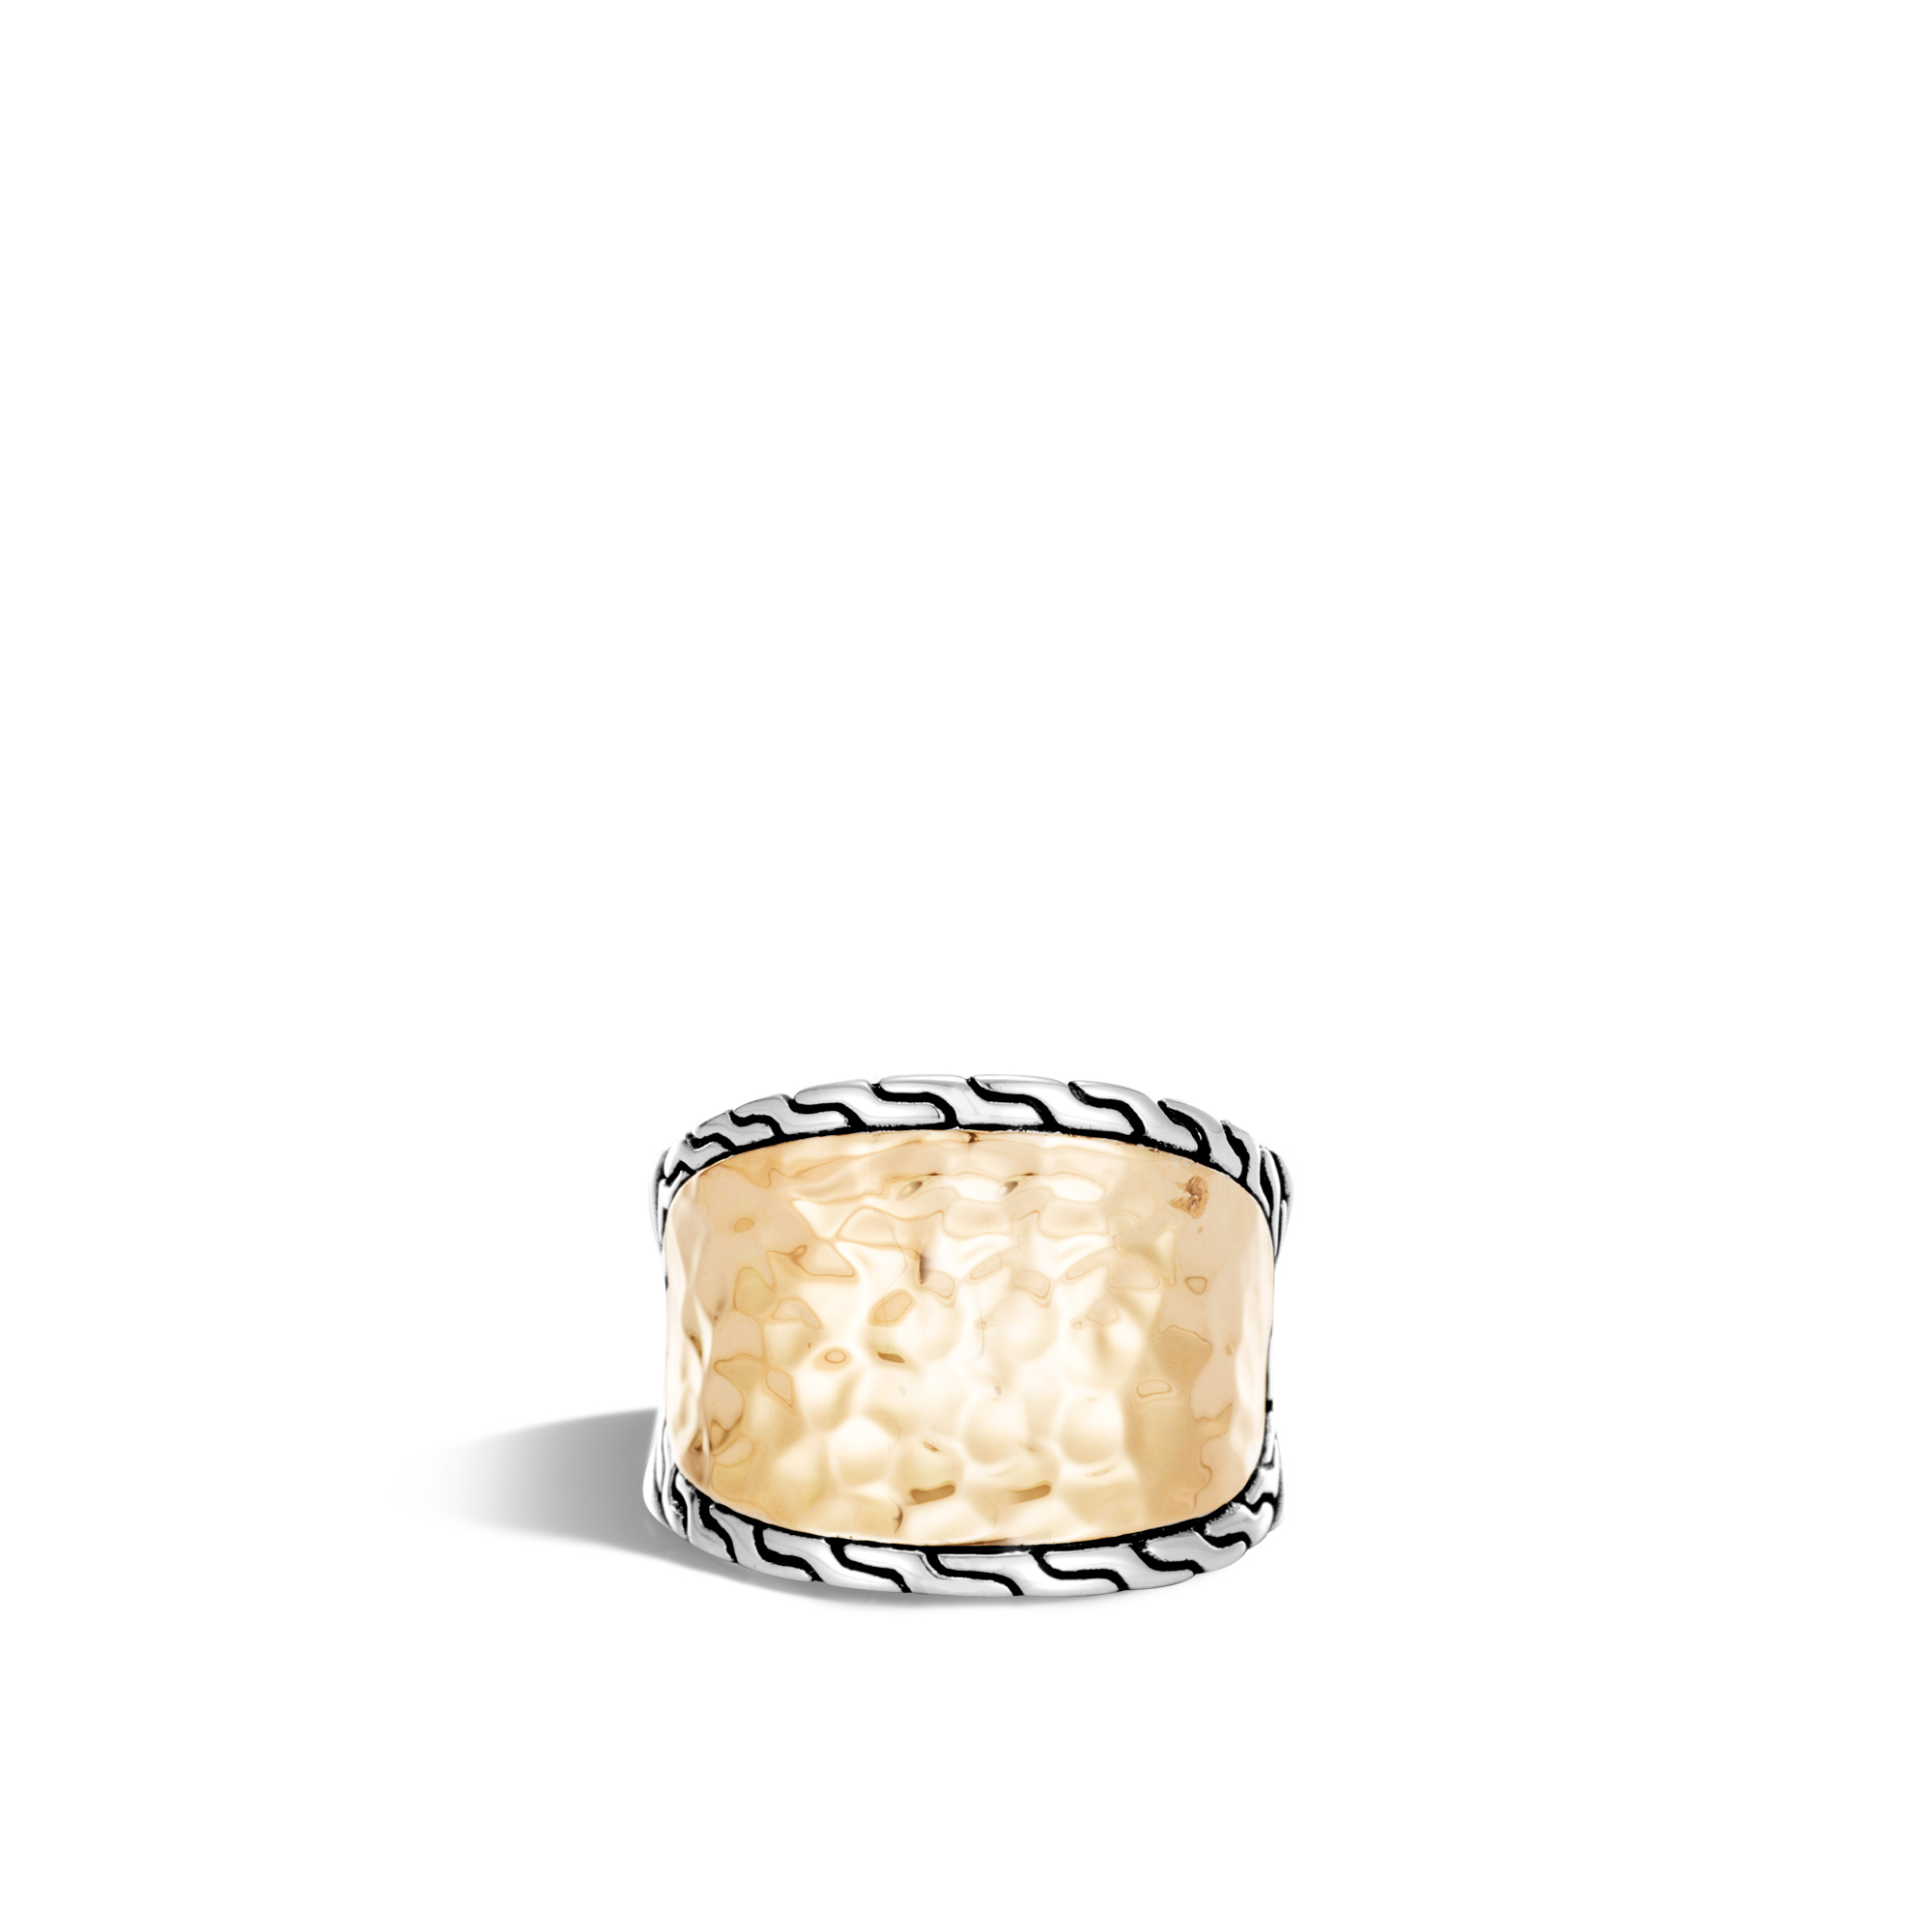 Classic Chain Saddle Ring in Silver and Hammered 18K Gold, , large